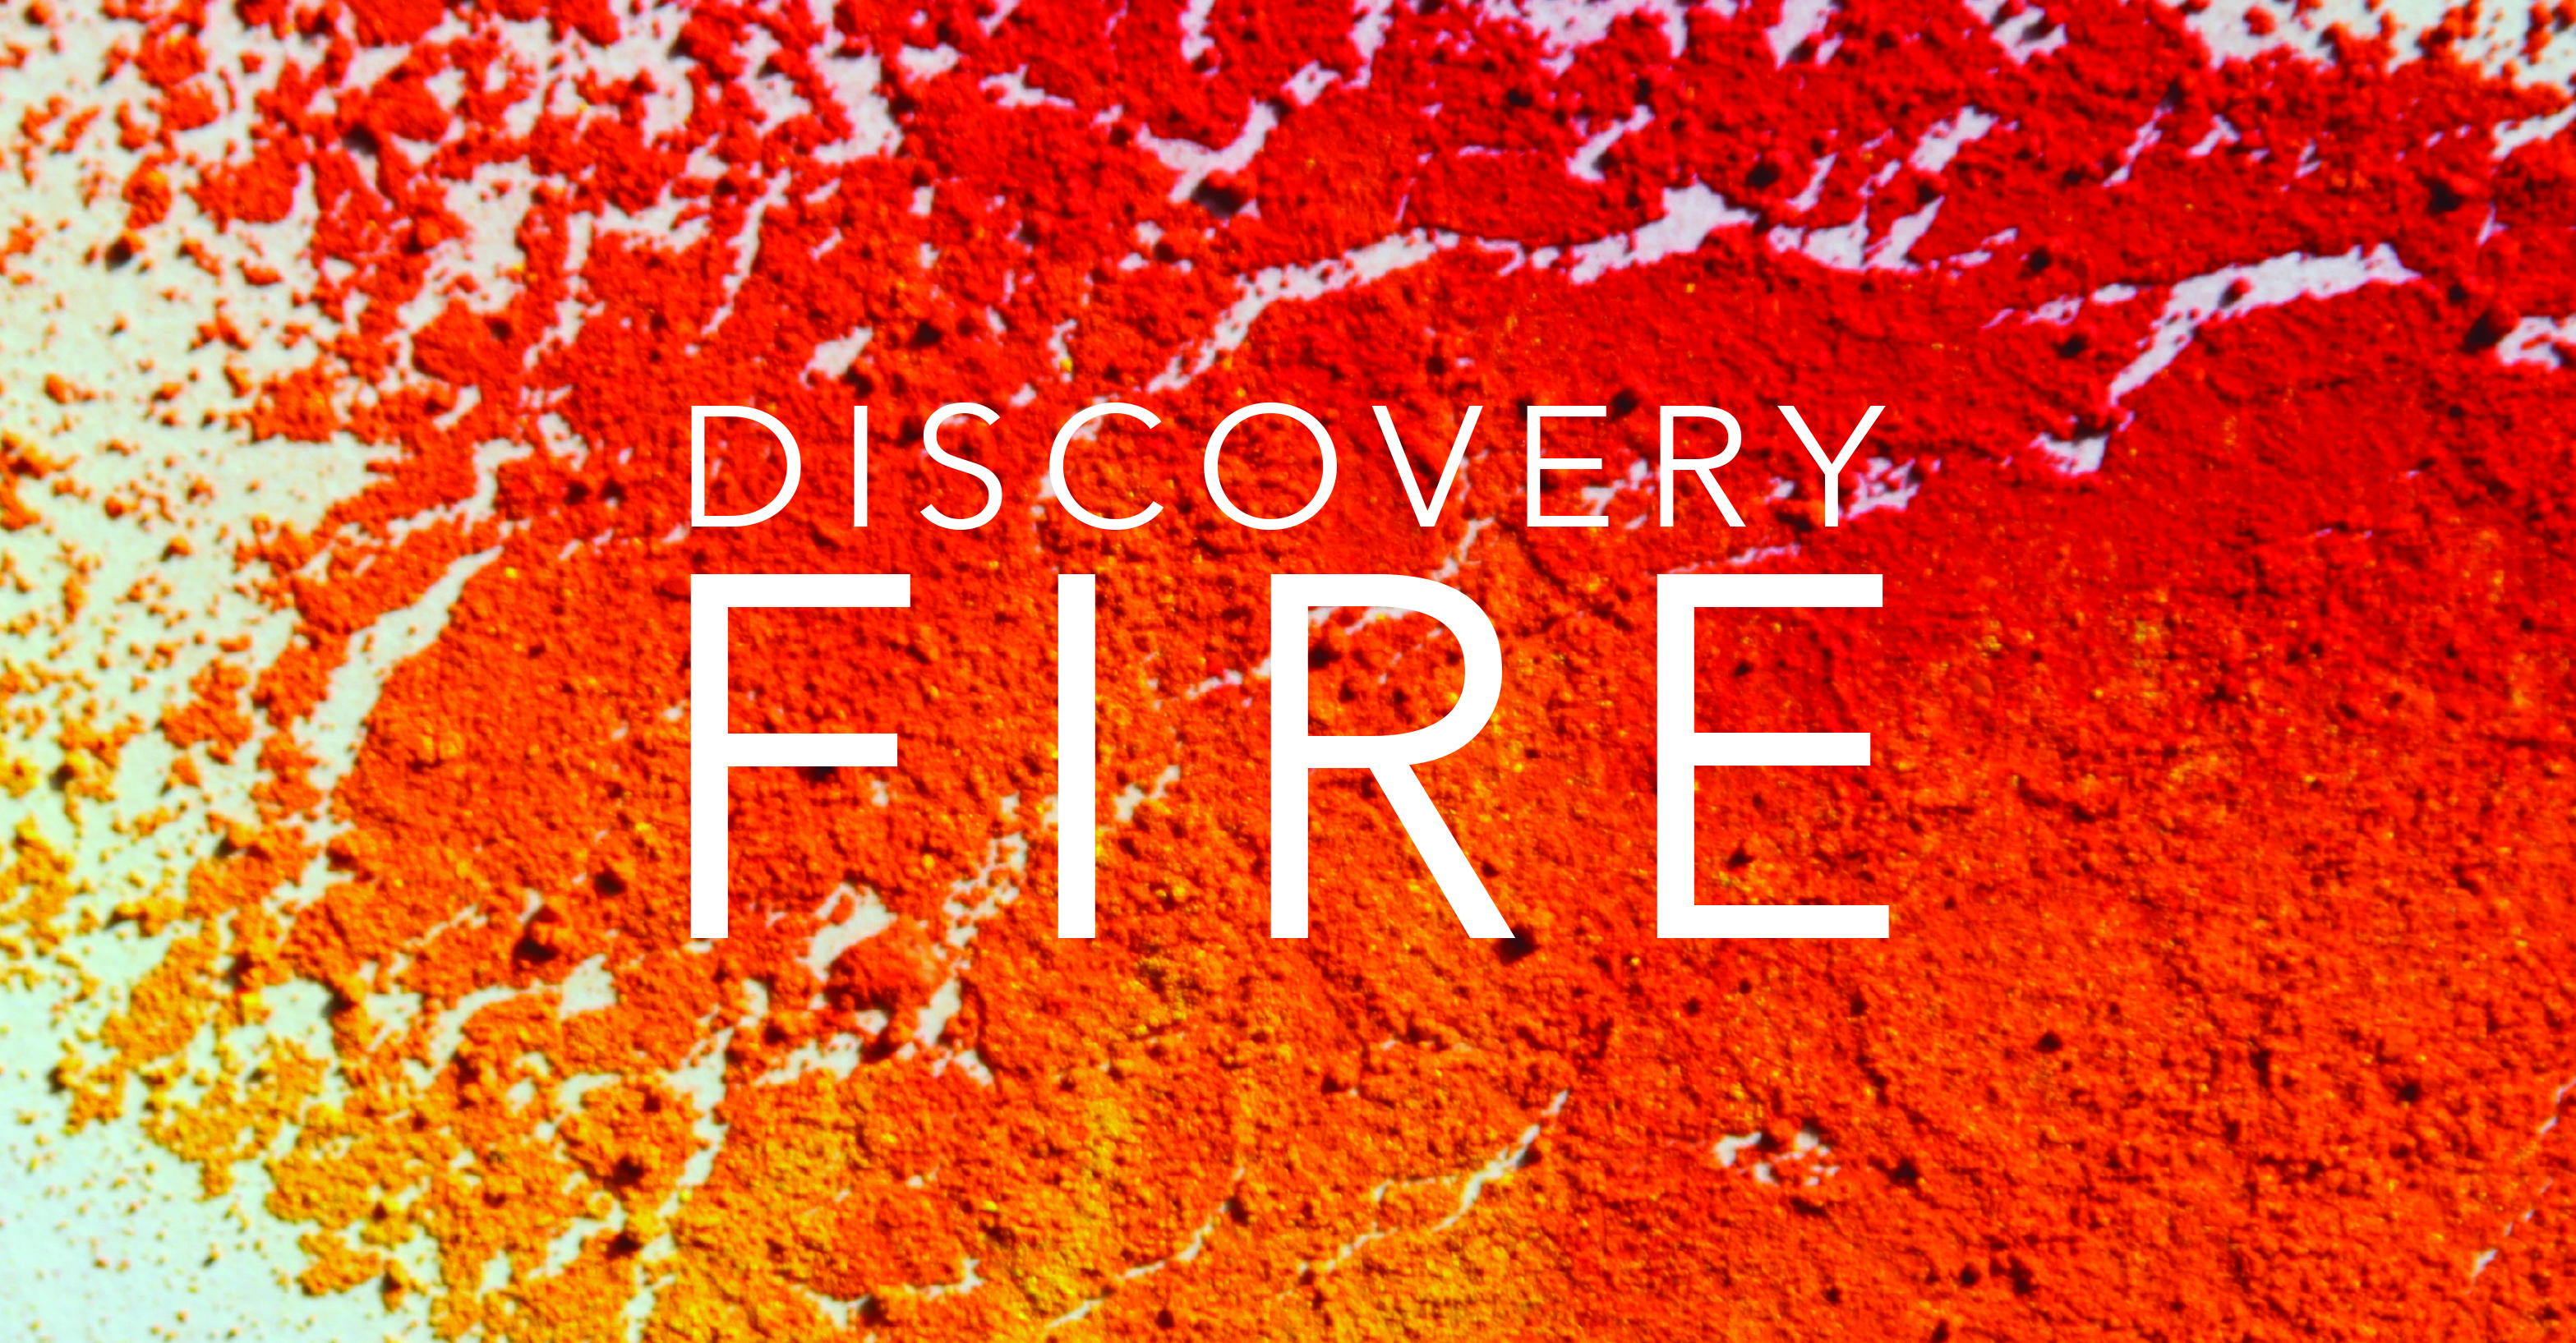 discovery of fire - photo #17